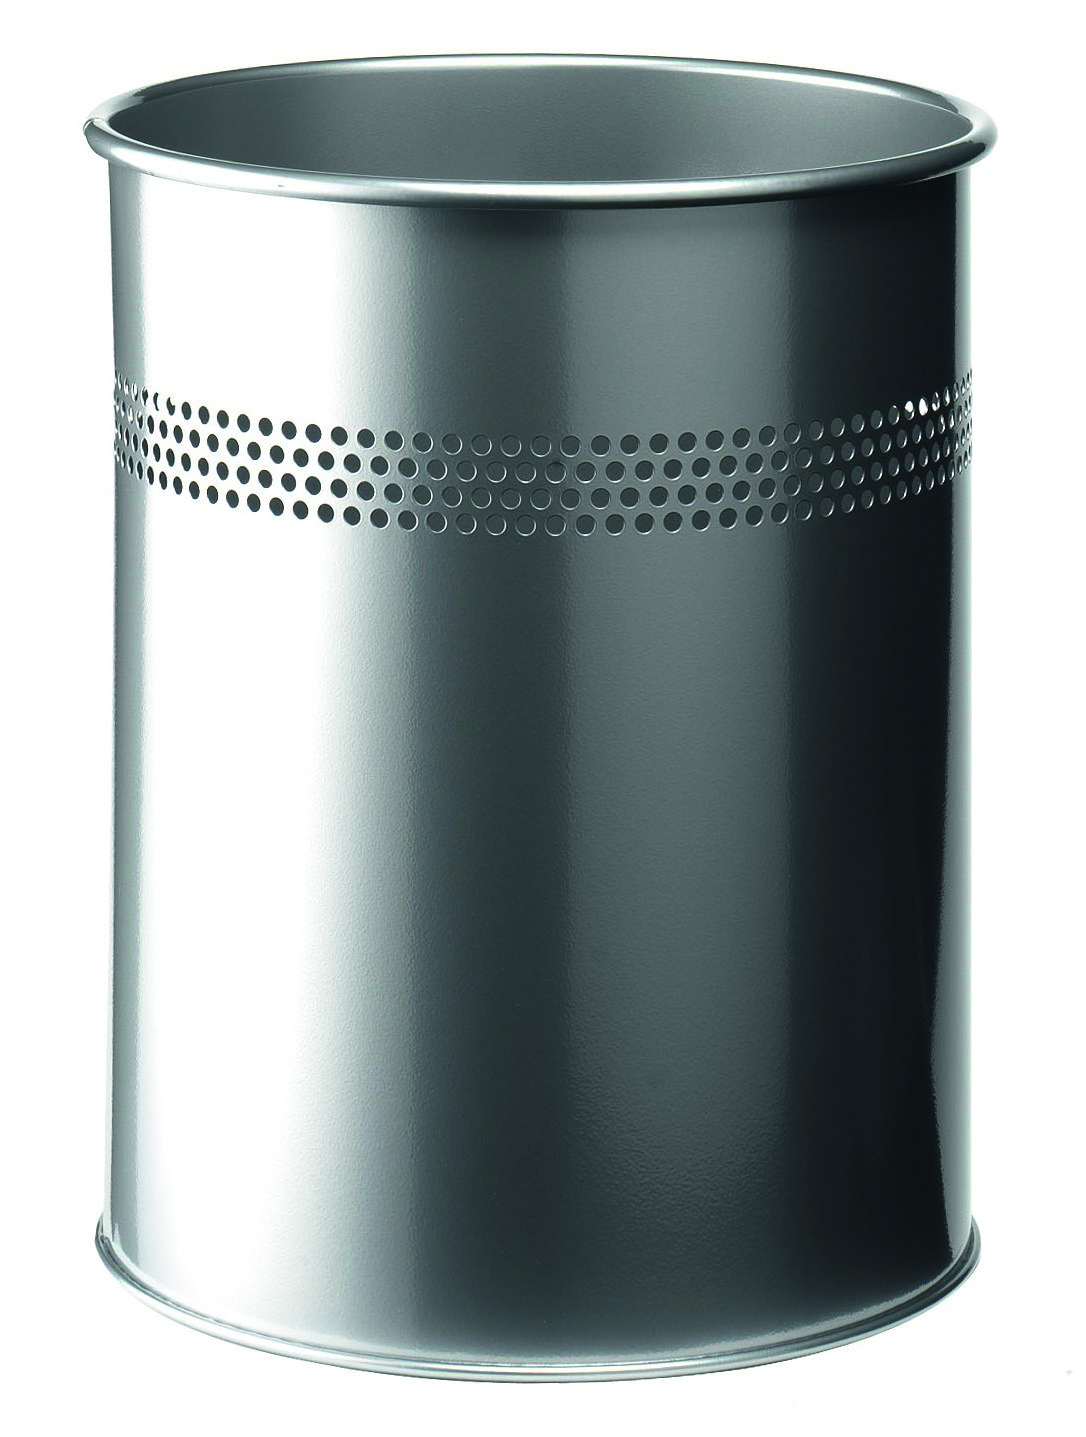 Decorative Metal Waste Baskets Durable Metal Waste Bin 15 Litre Silver 3300 23 Office